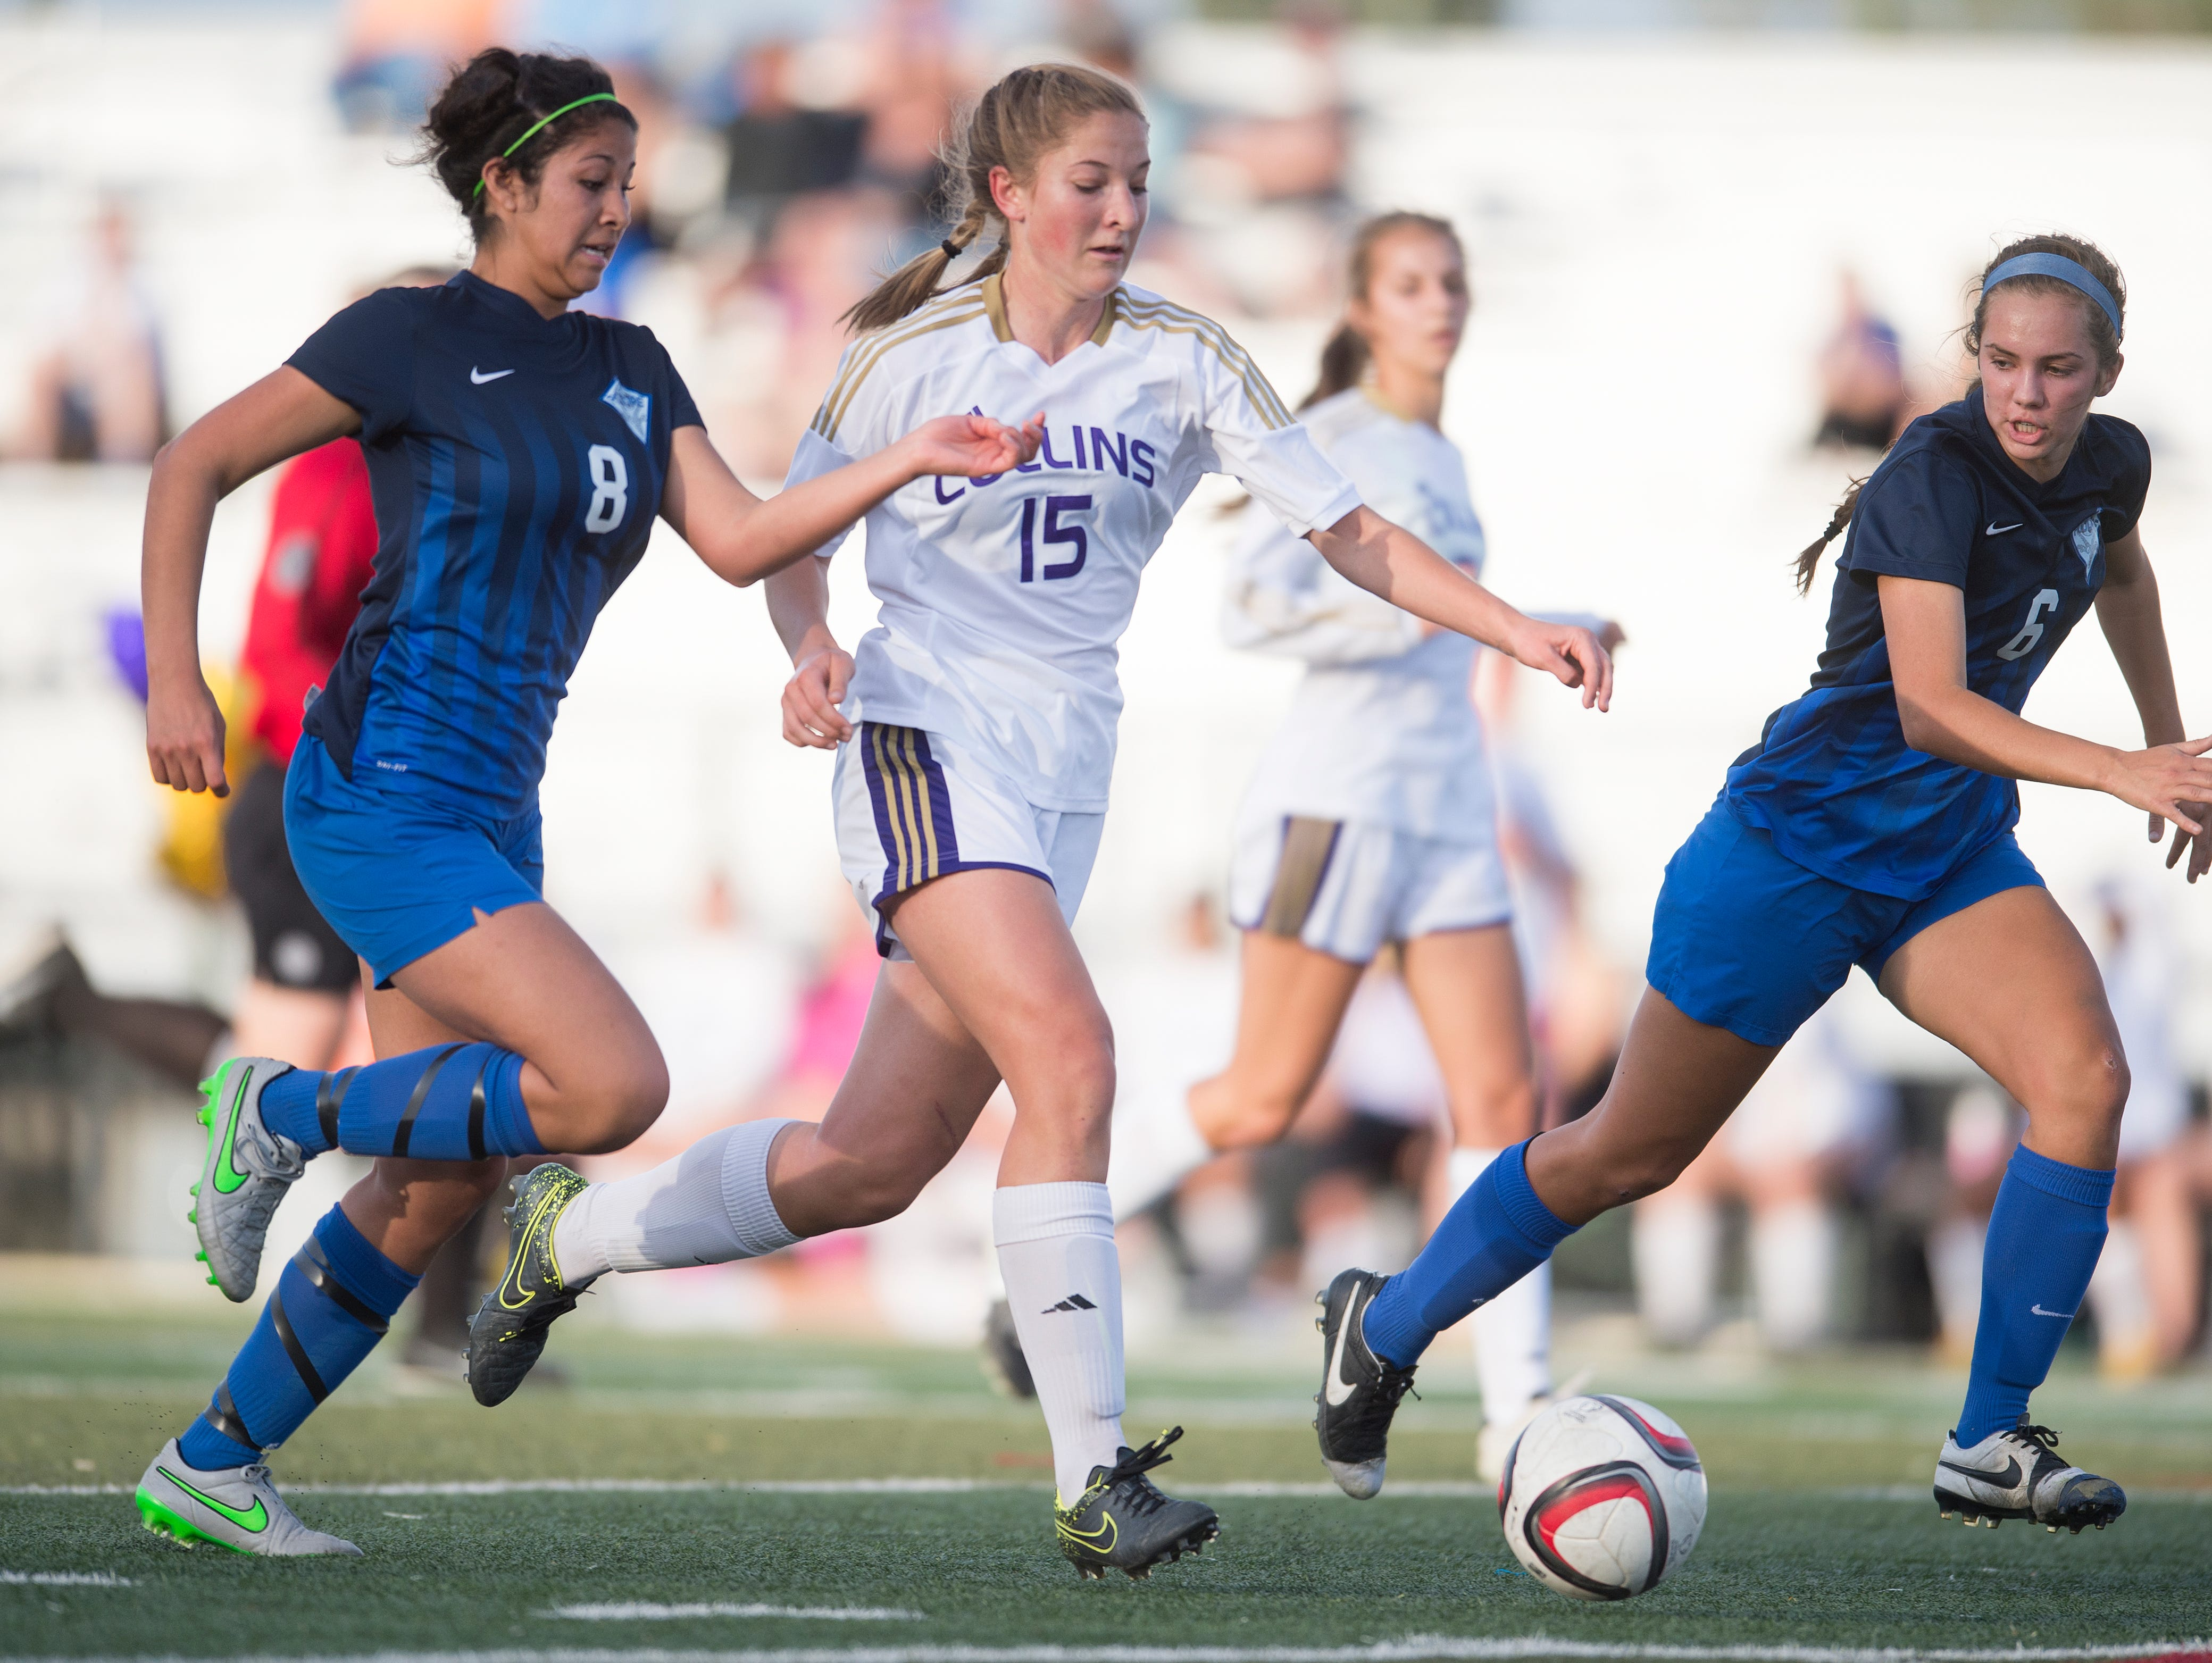 Esther Malers of Fort Collins High School tries to get around Poudre defenders Shea Sarmiento and Scout Bohlender during a game at French Field Thursday, May 5, 2016. The Lambkins defeated the Impalas 3-0.